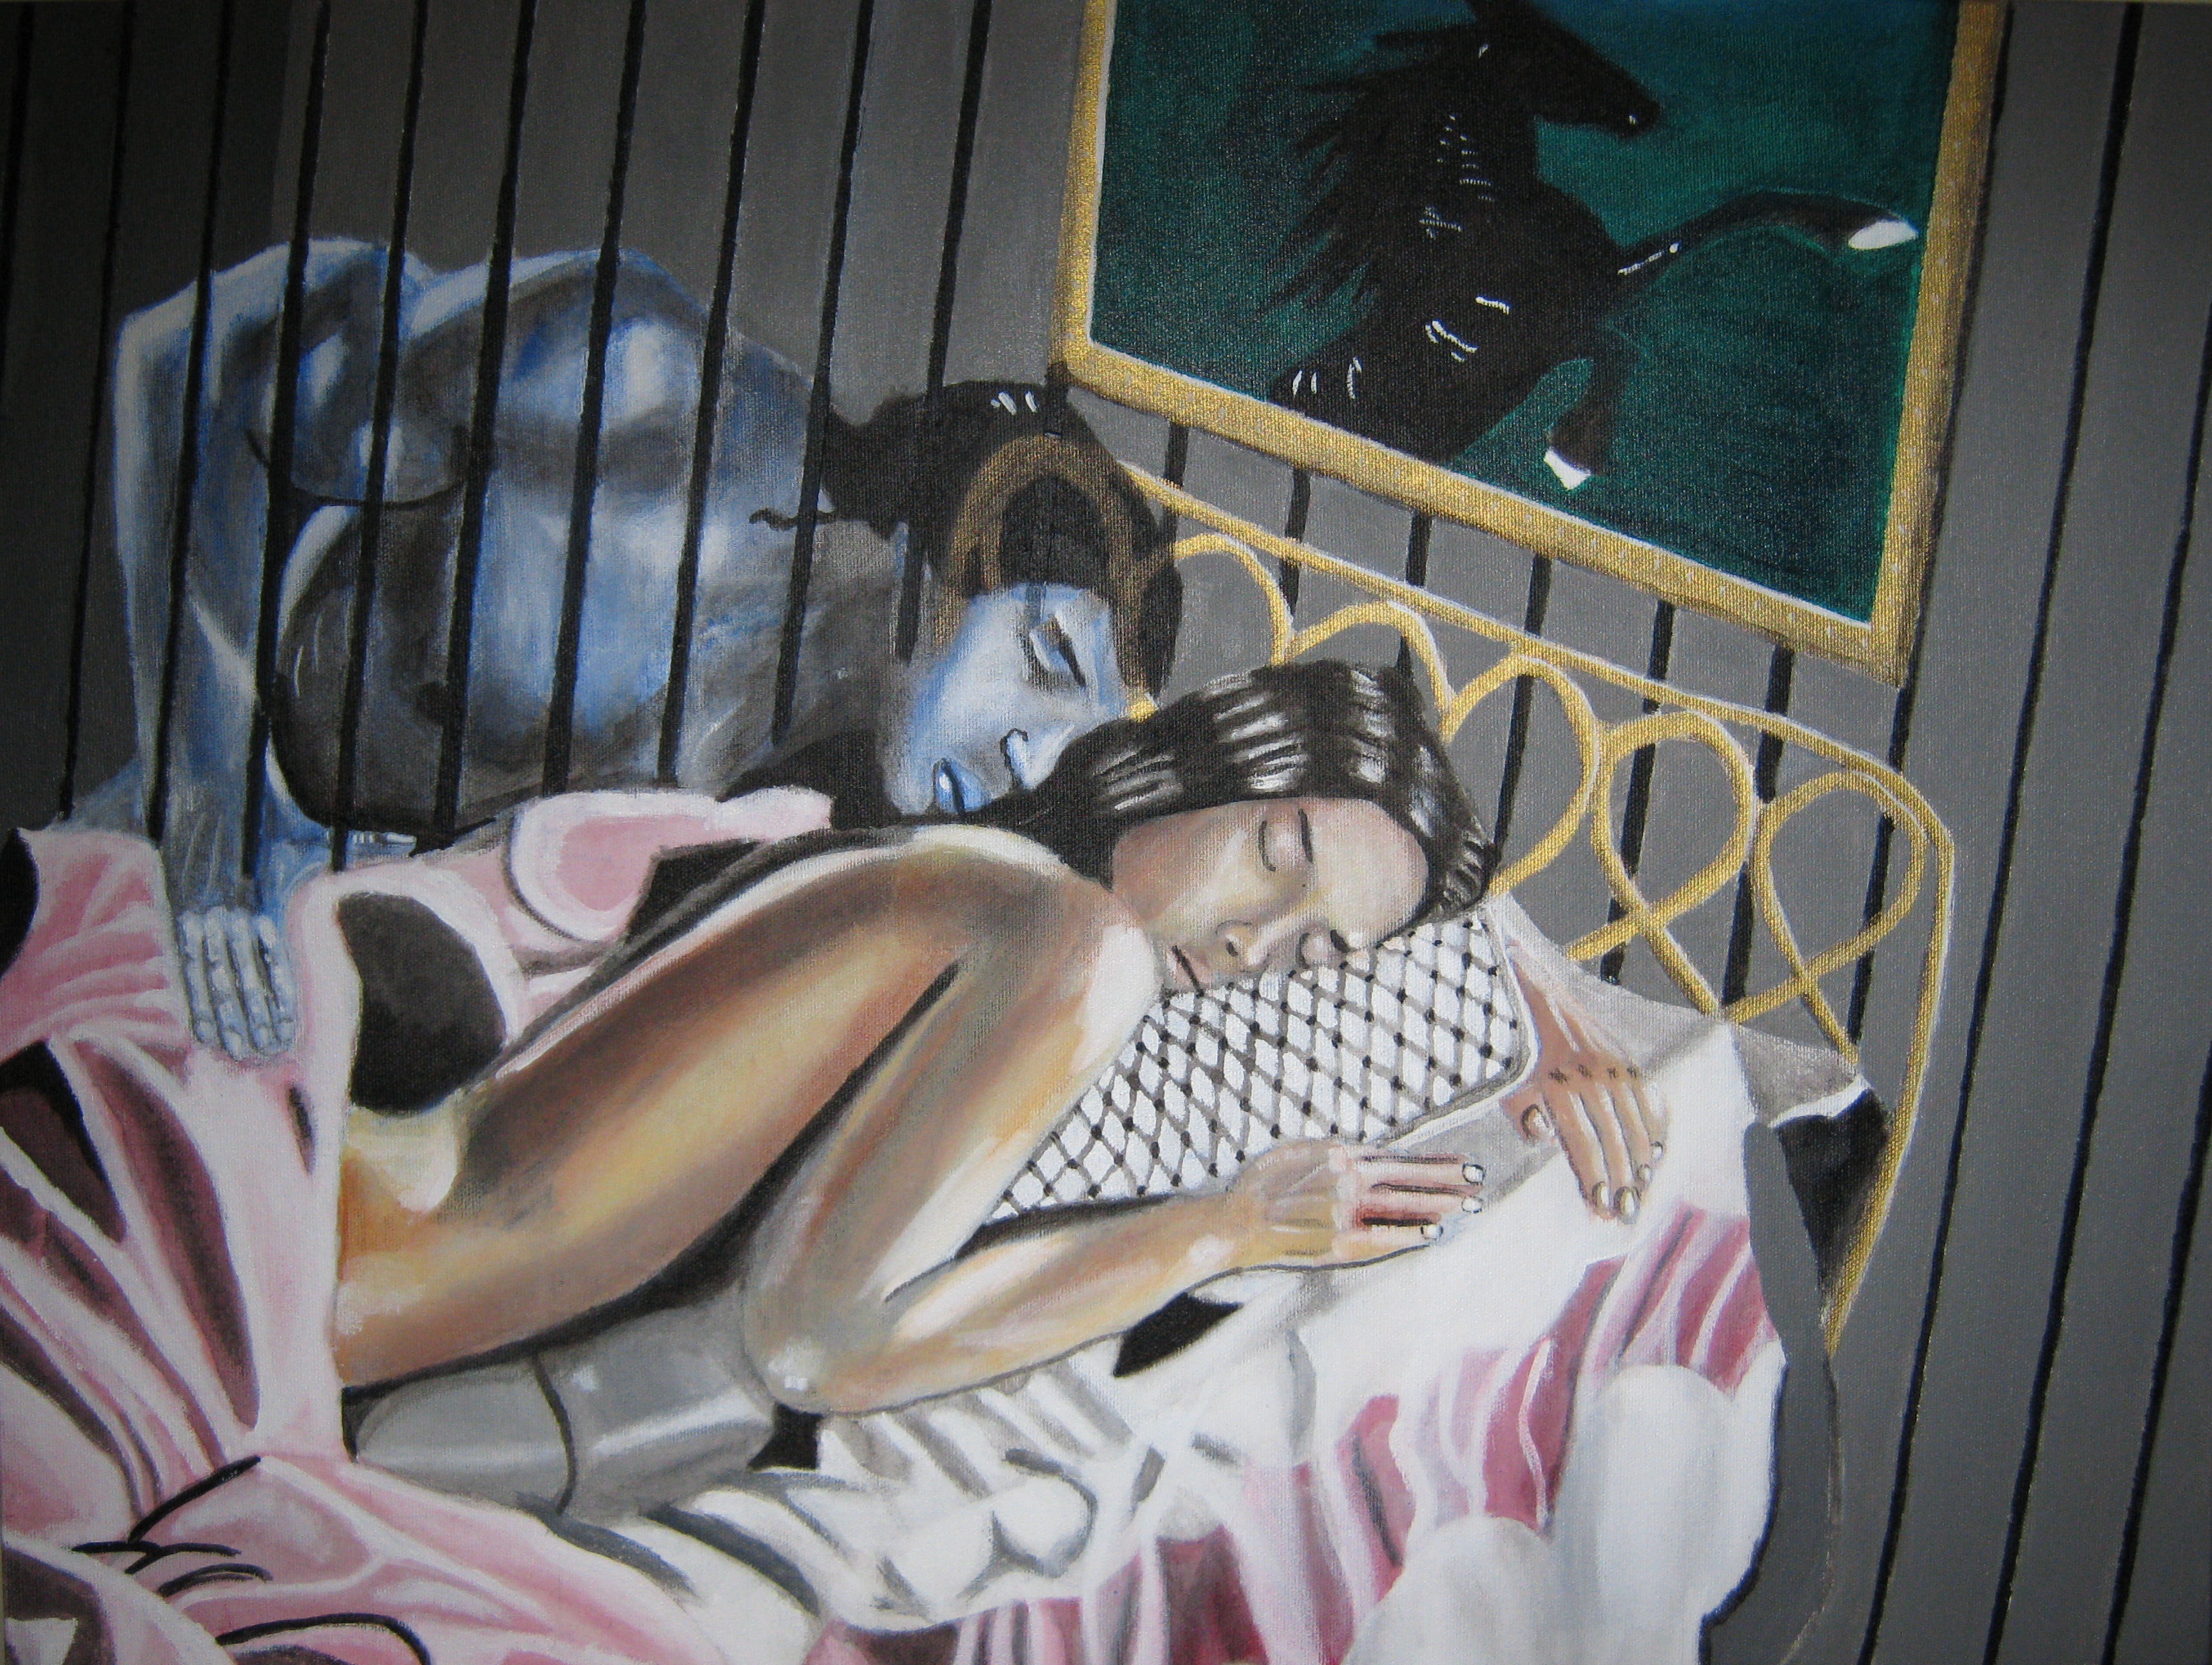 Incubus in the Night, Charles Moffat, 2011